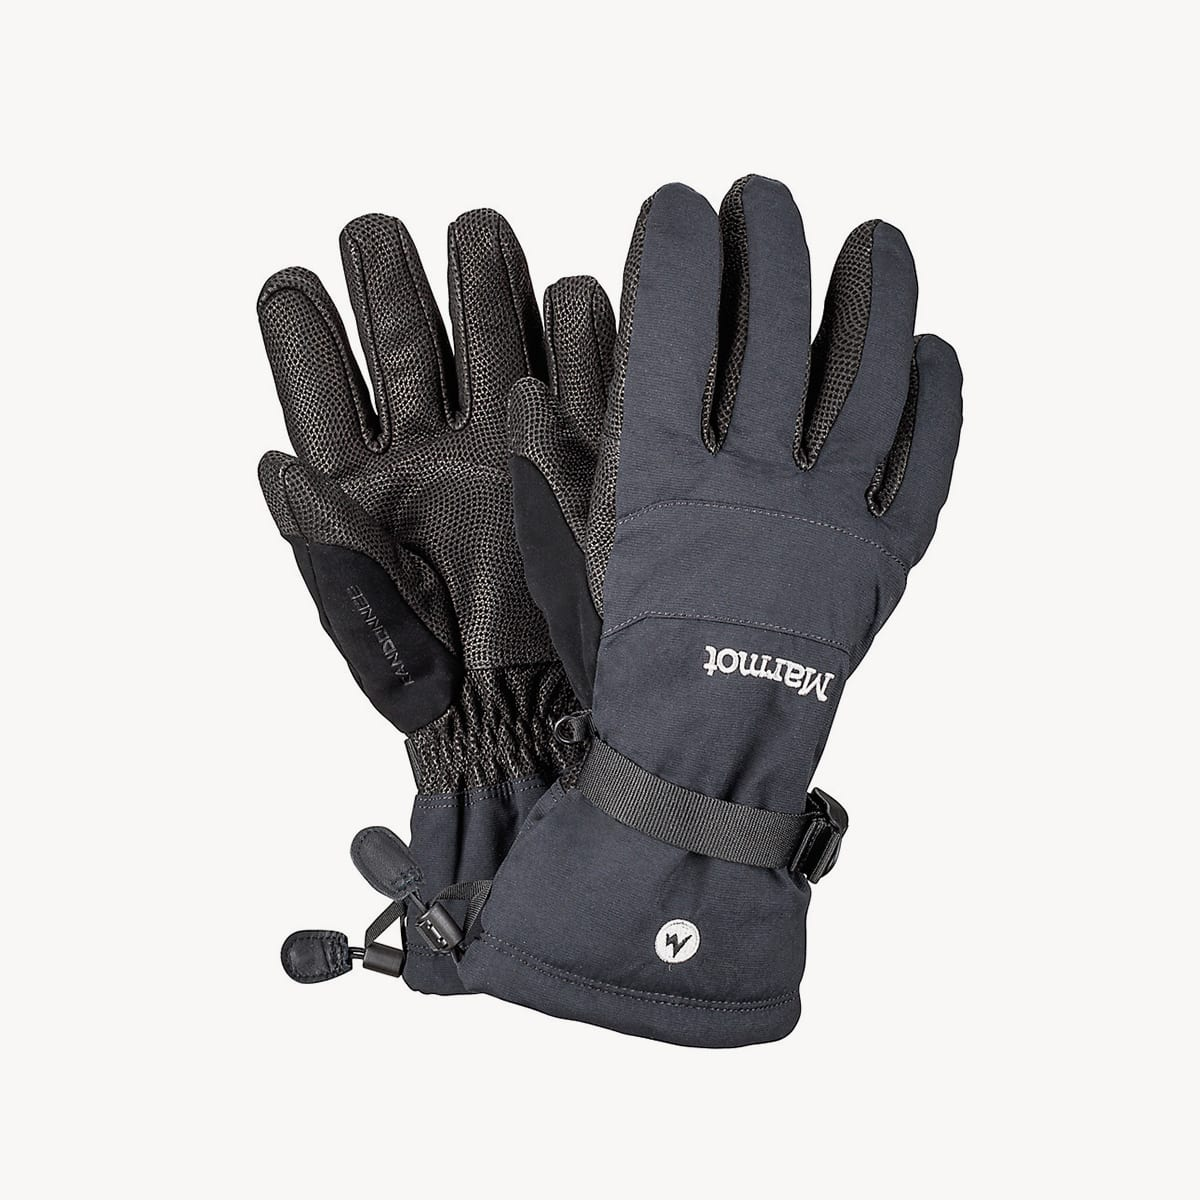 821a94be3524e The Best Travel Gloves for Winter Adventures